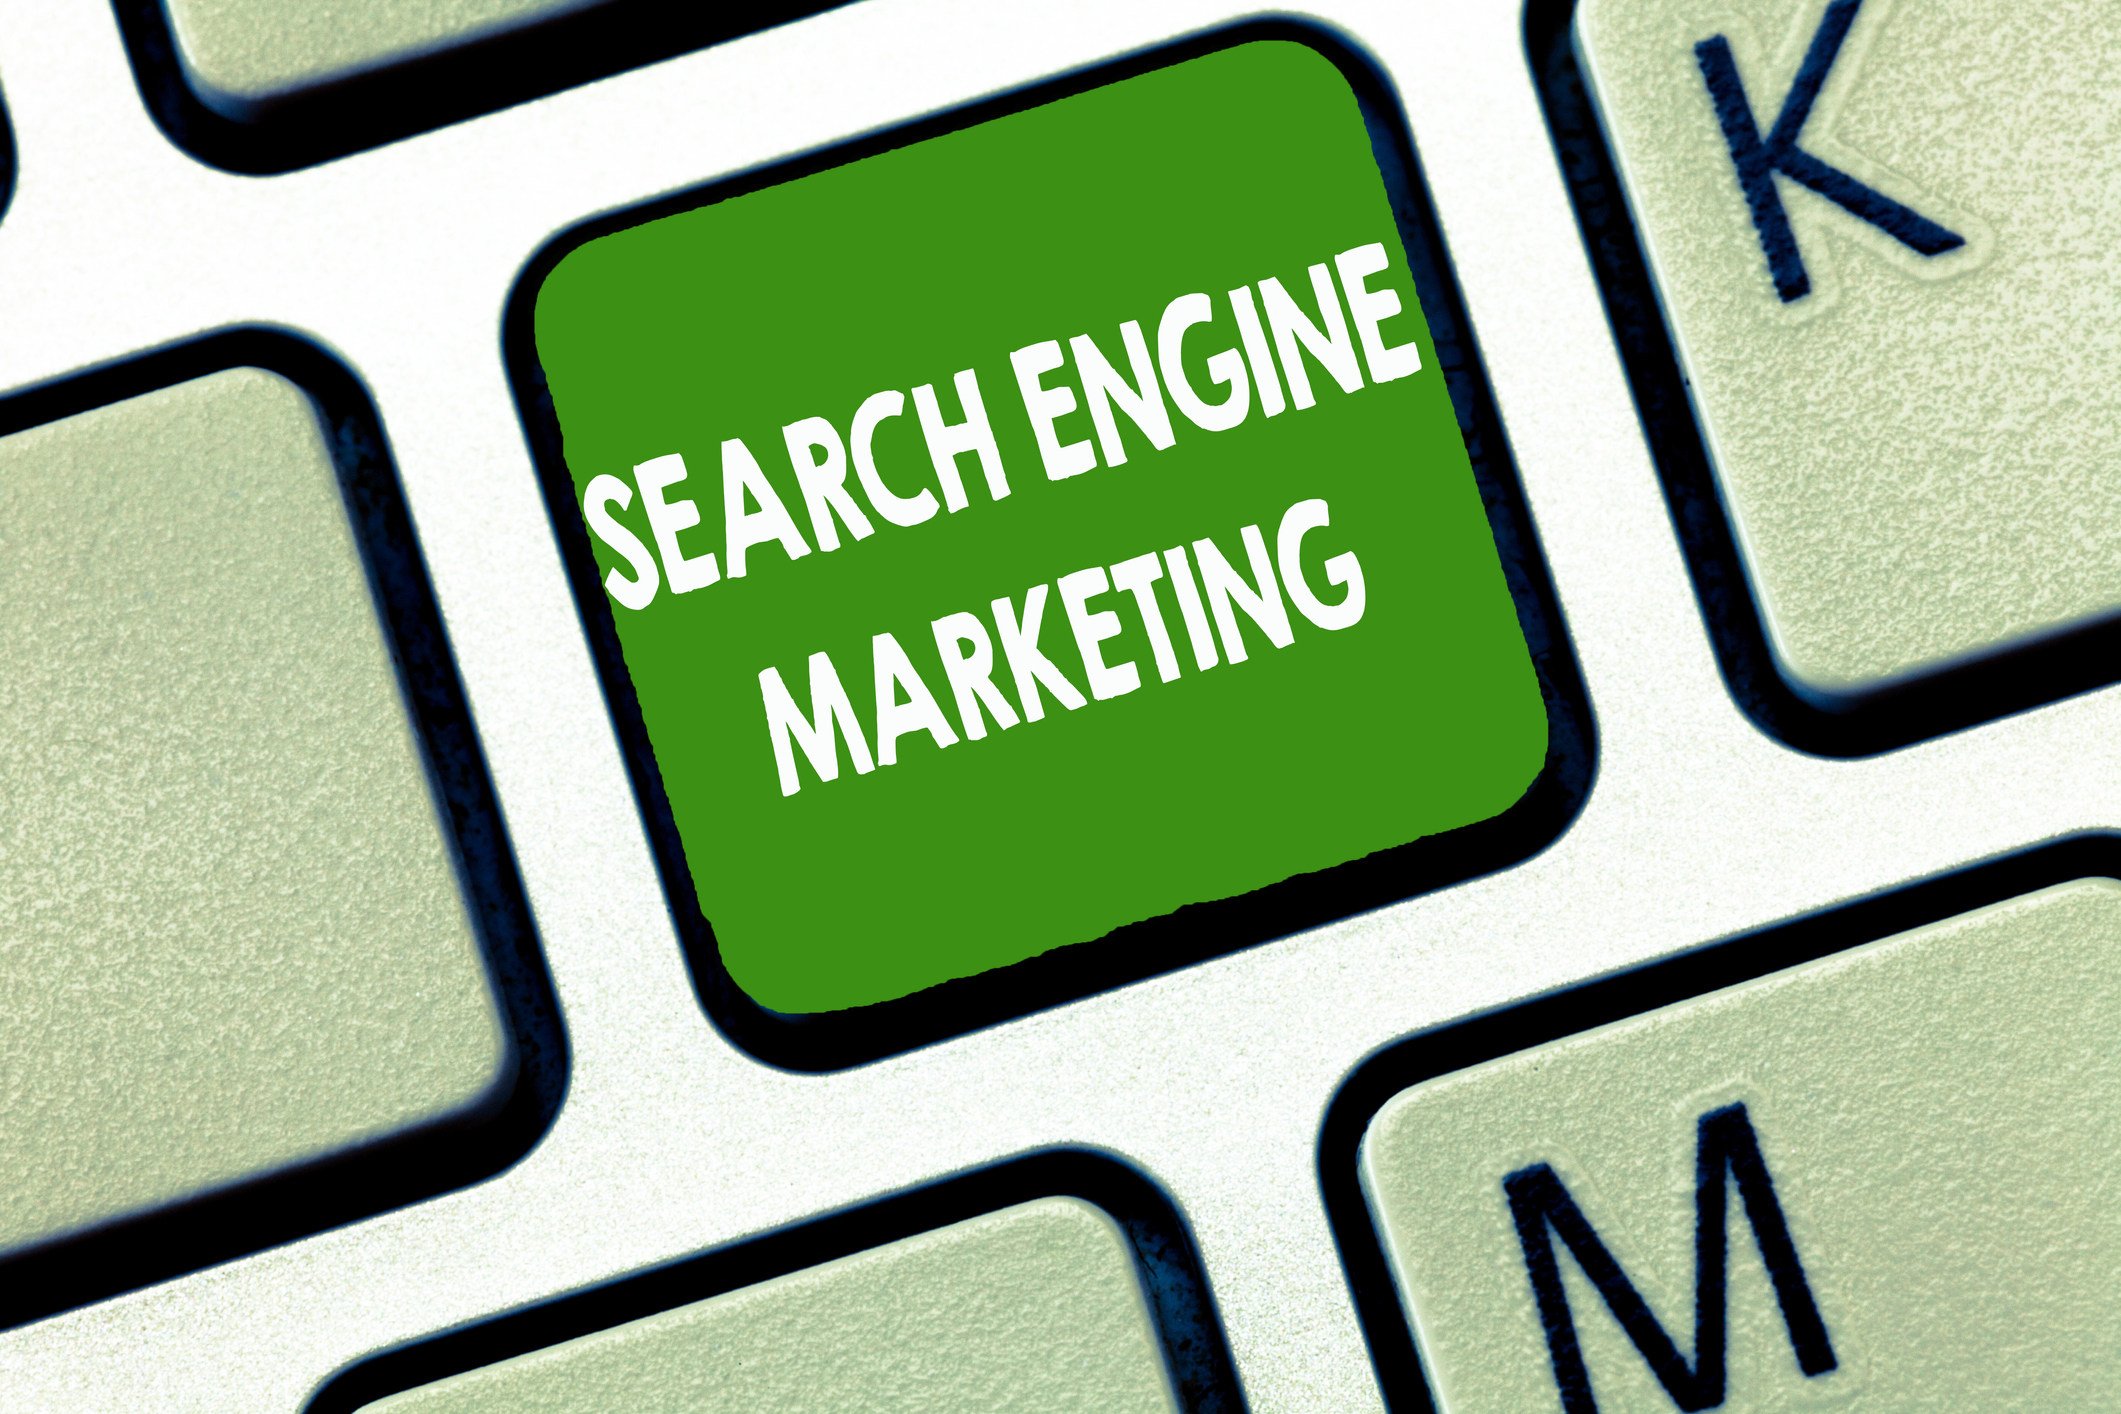 Writing note showing Search Engine Marketing. Business photo showcasing promote Website visibility on searched result pages.